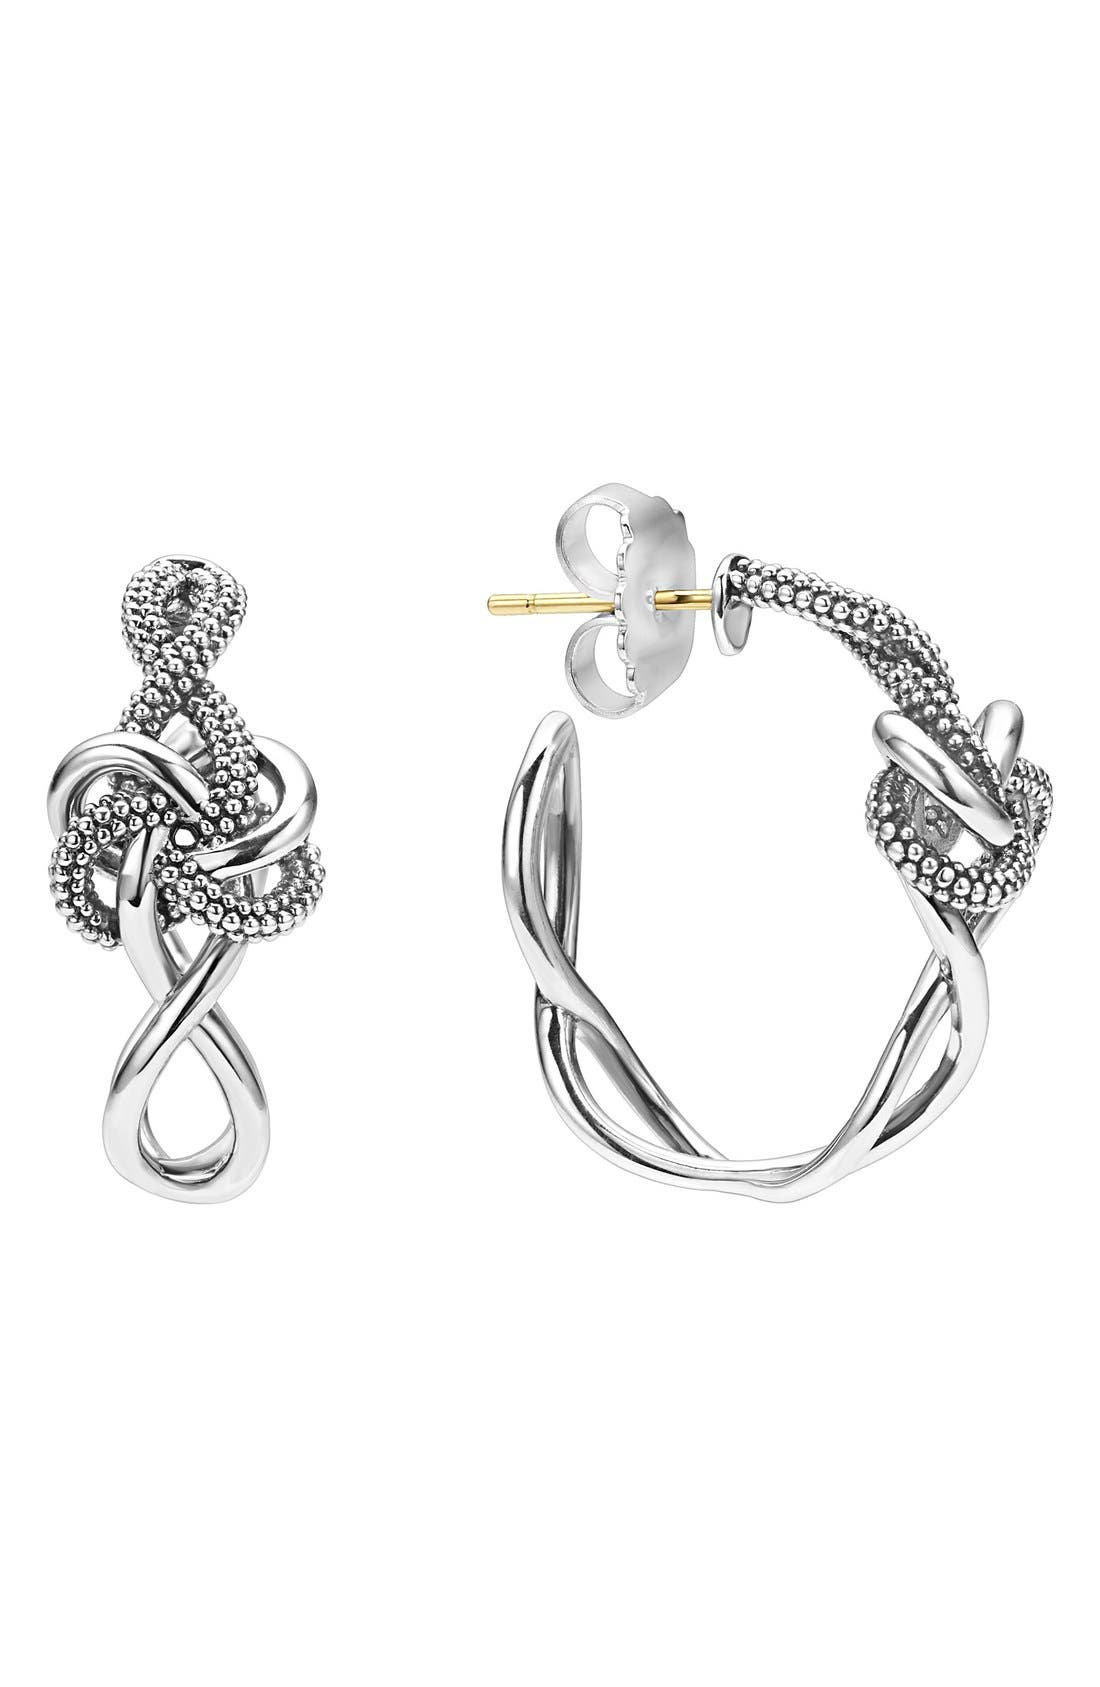 'Love Knot' Hoop Earrings,                             Main thumbnail 1, color,                             Sterling Silver